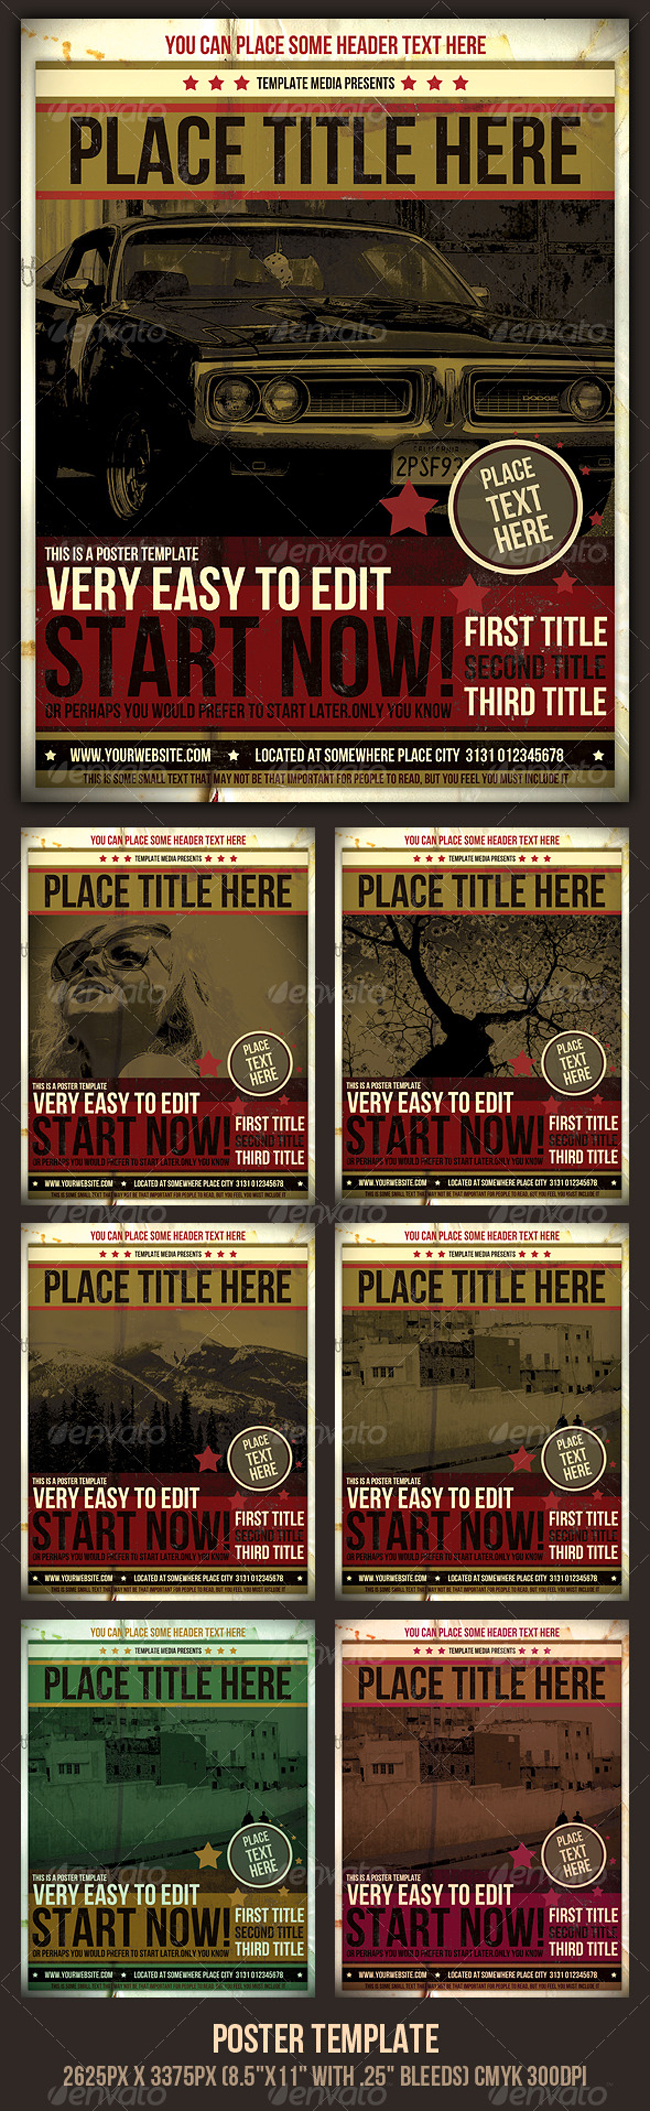 Poster-Templates-